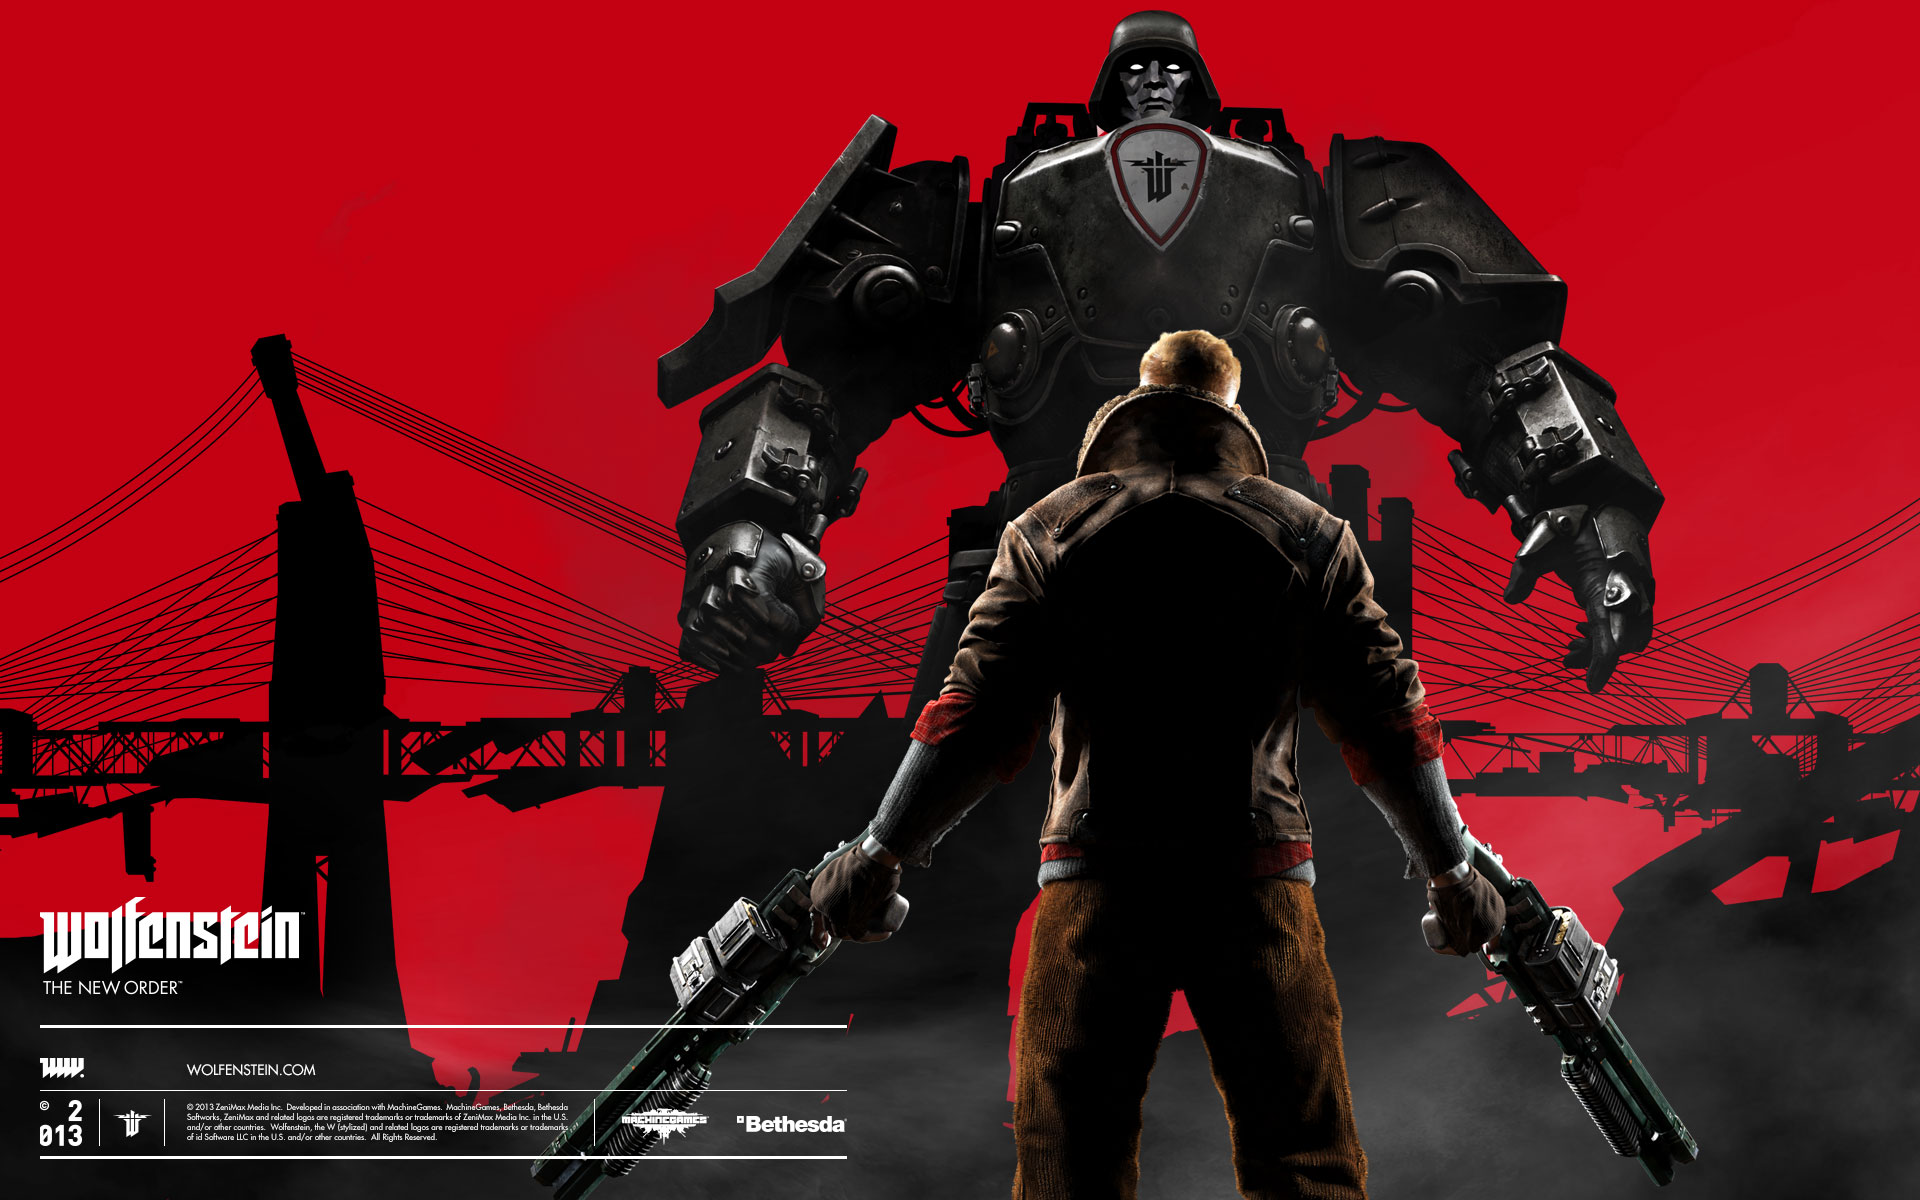 2014 Wolfenstein The New Order Wallpapers Wallpapers Hd